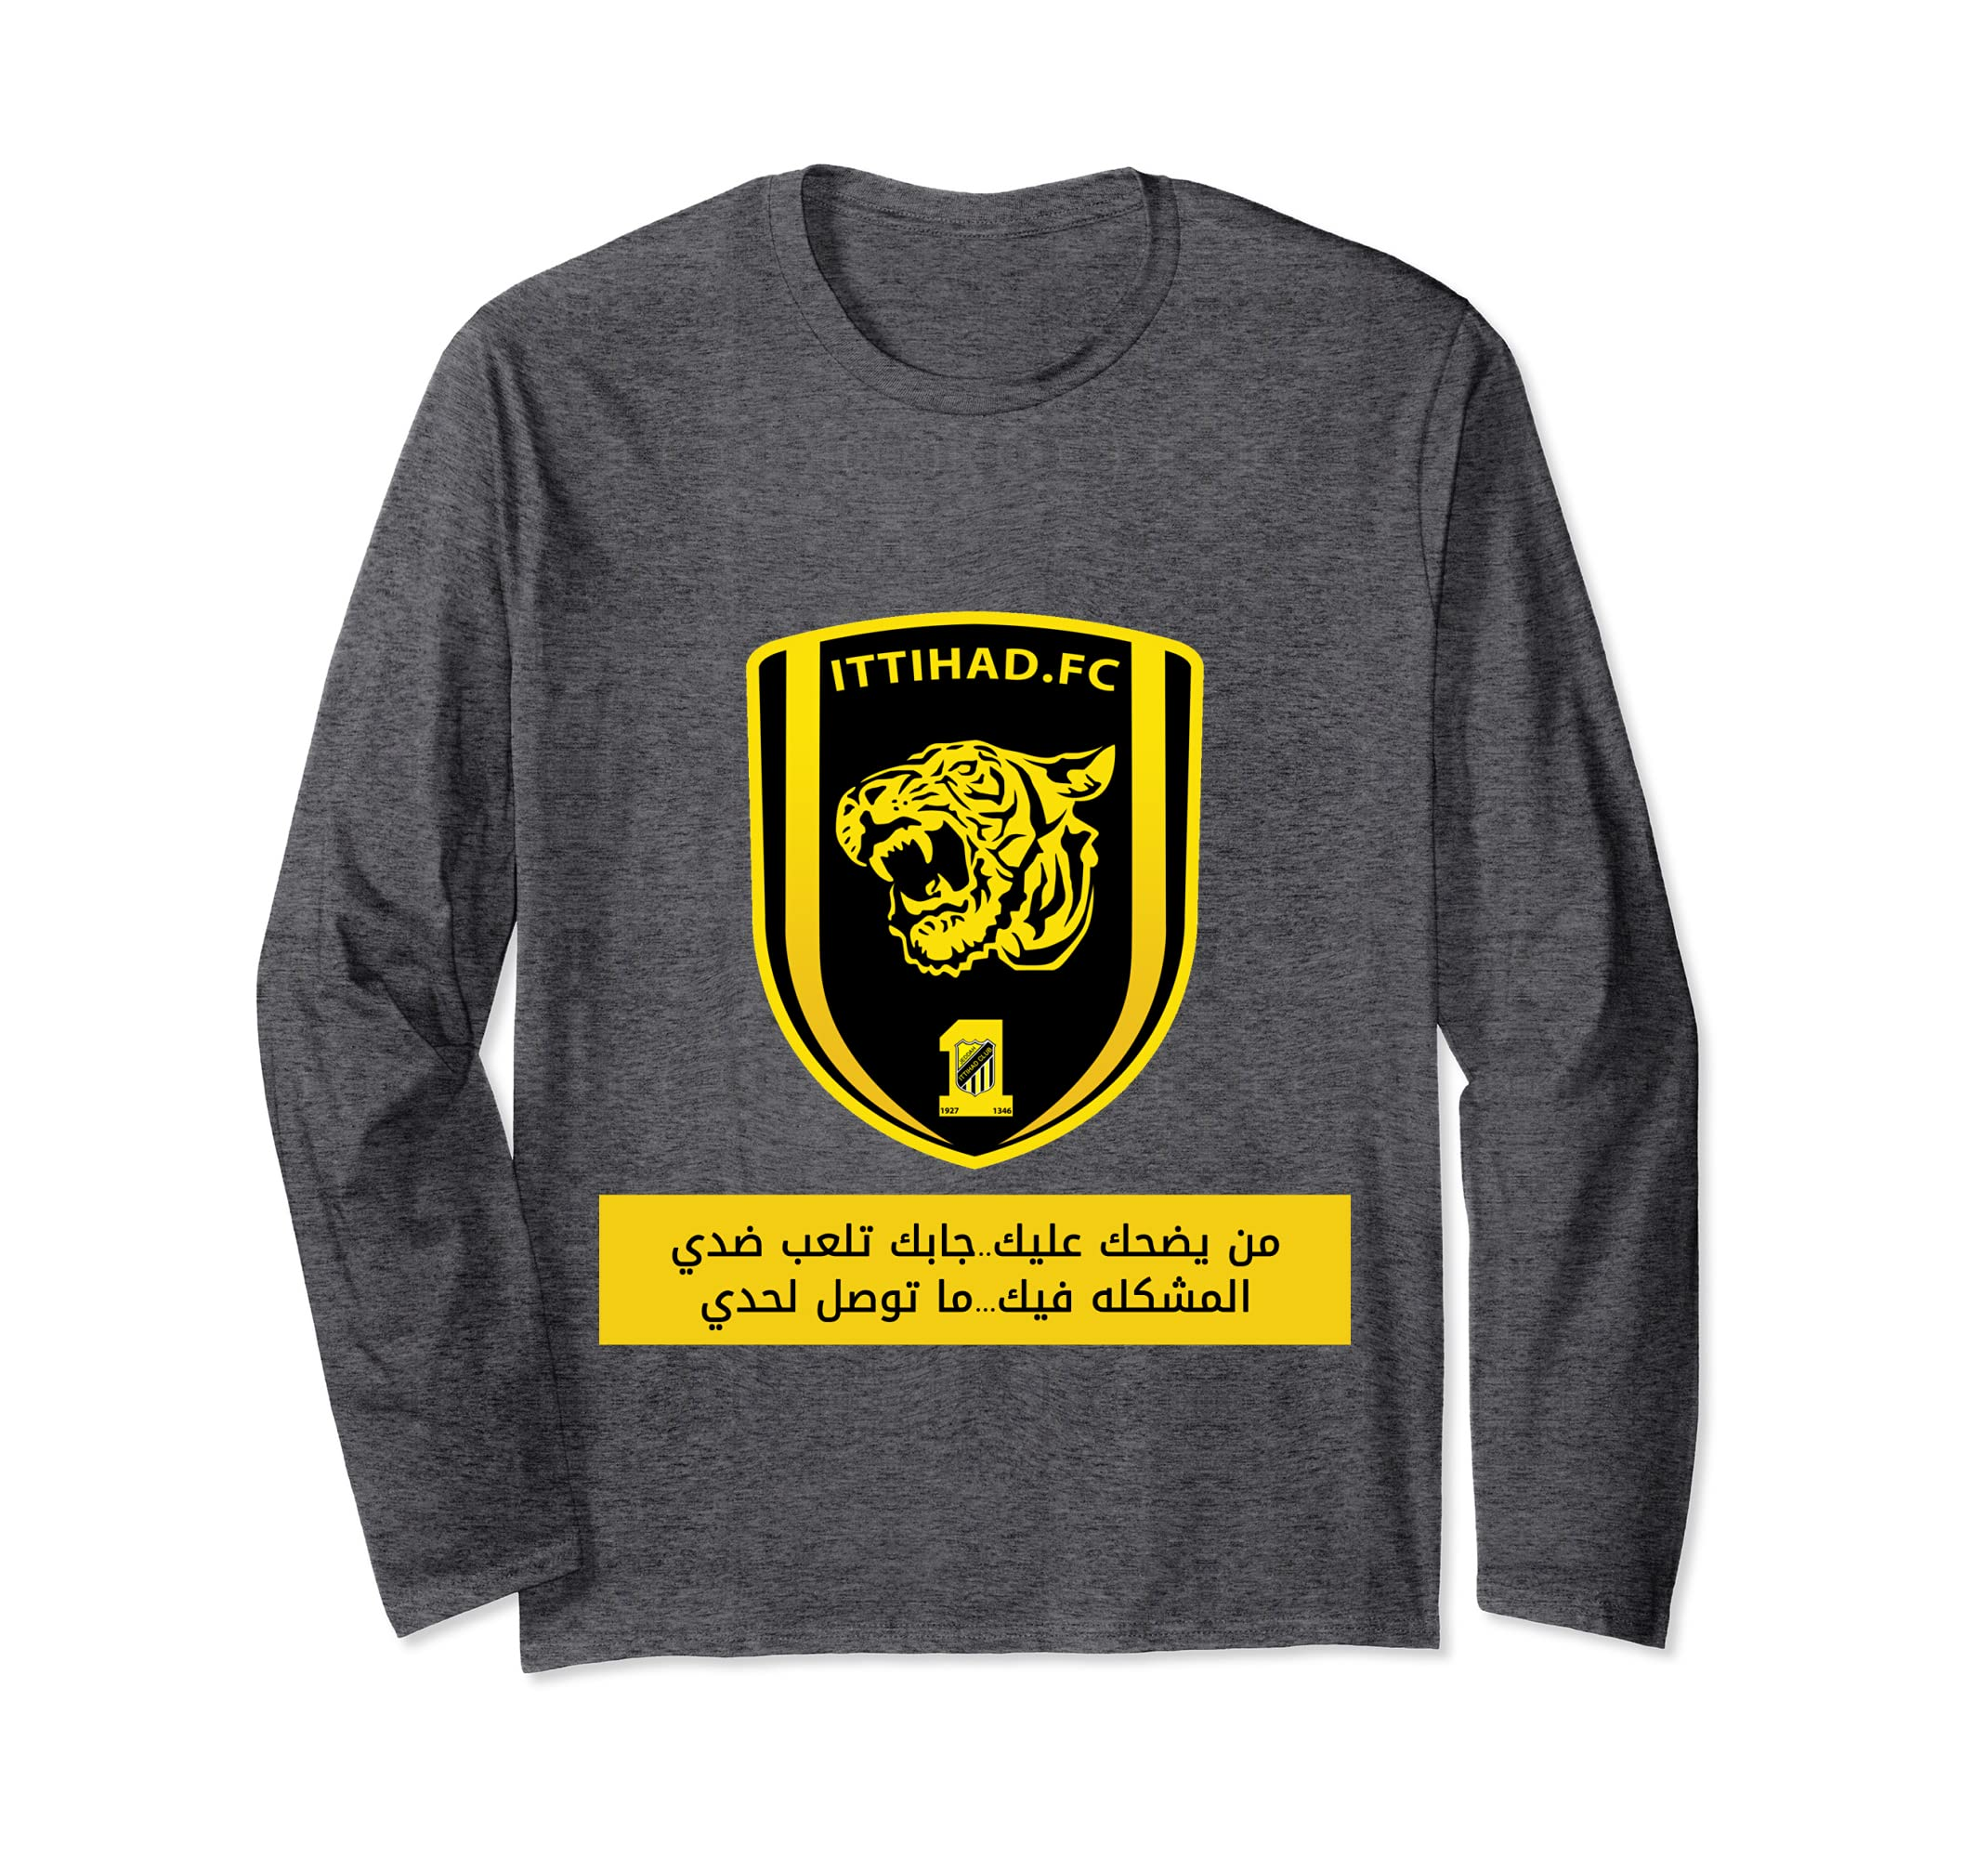 6531fc15a20b Amazon.com  Al-Ittihad Soccer football tee shirt Saudi Team Fan  Clothing